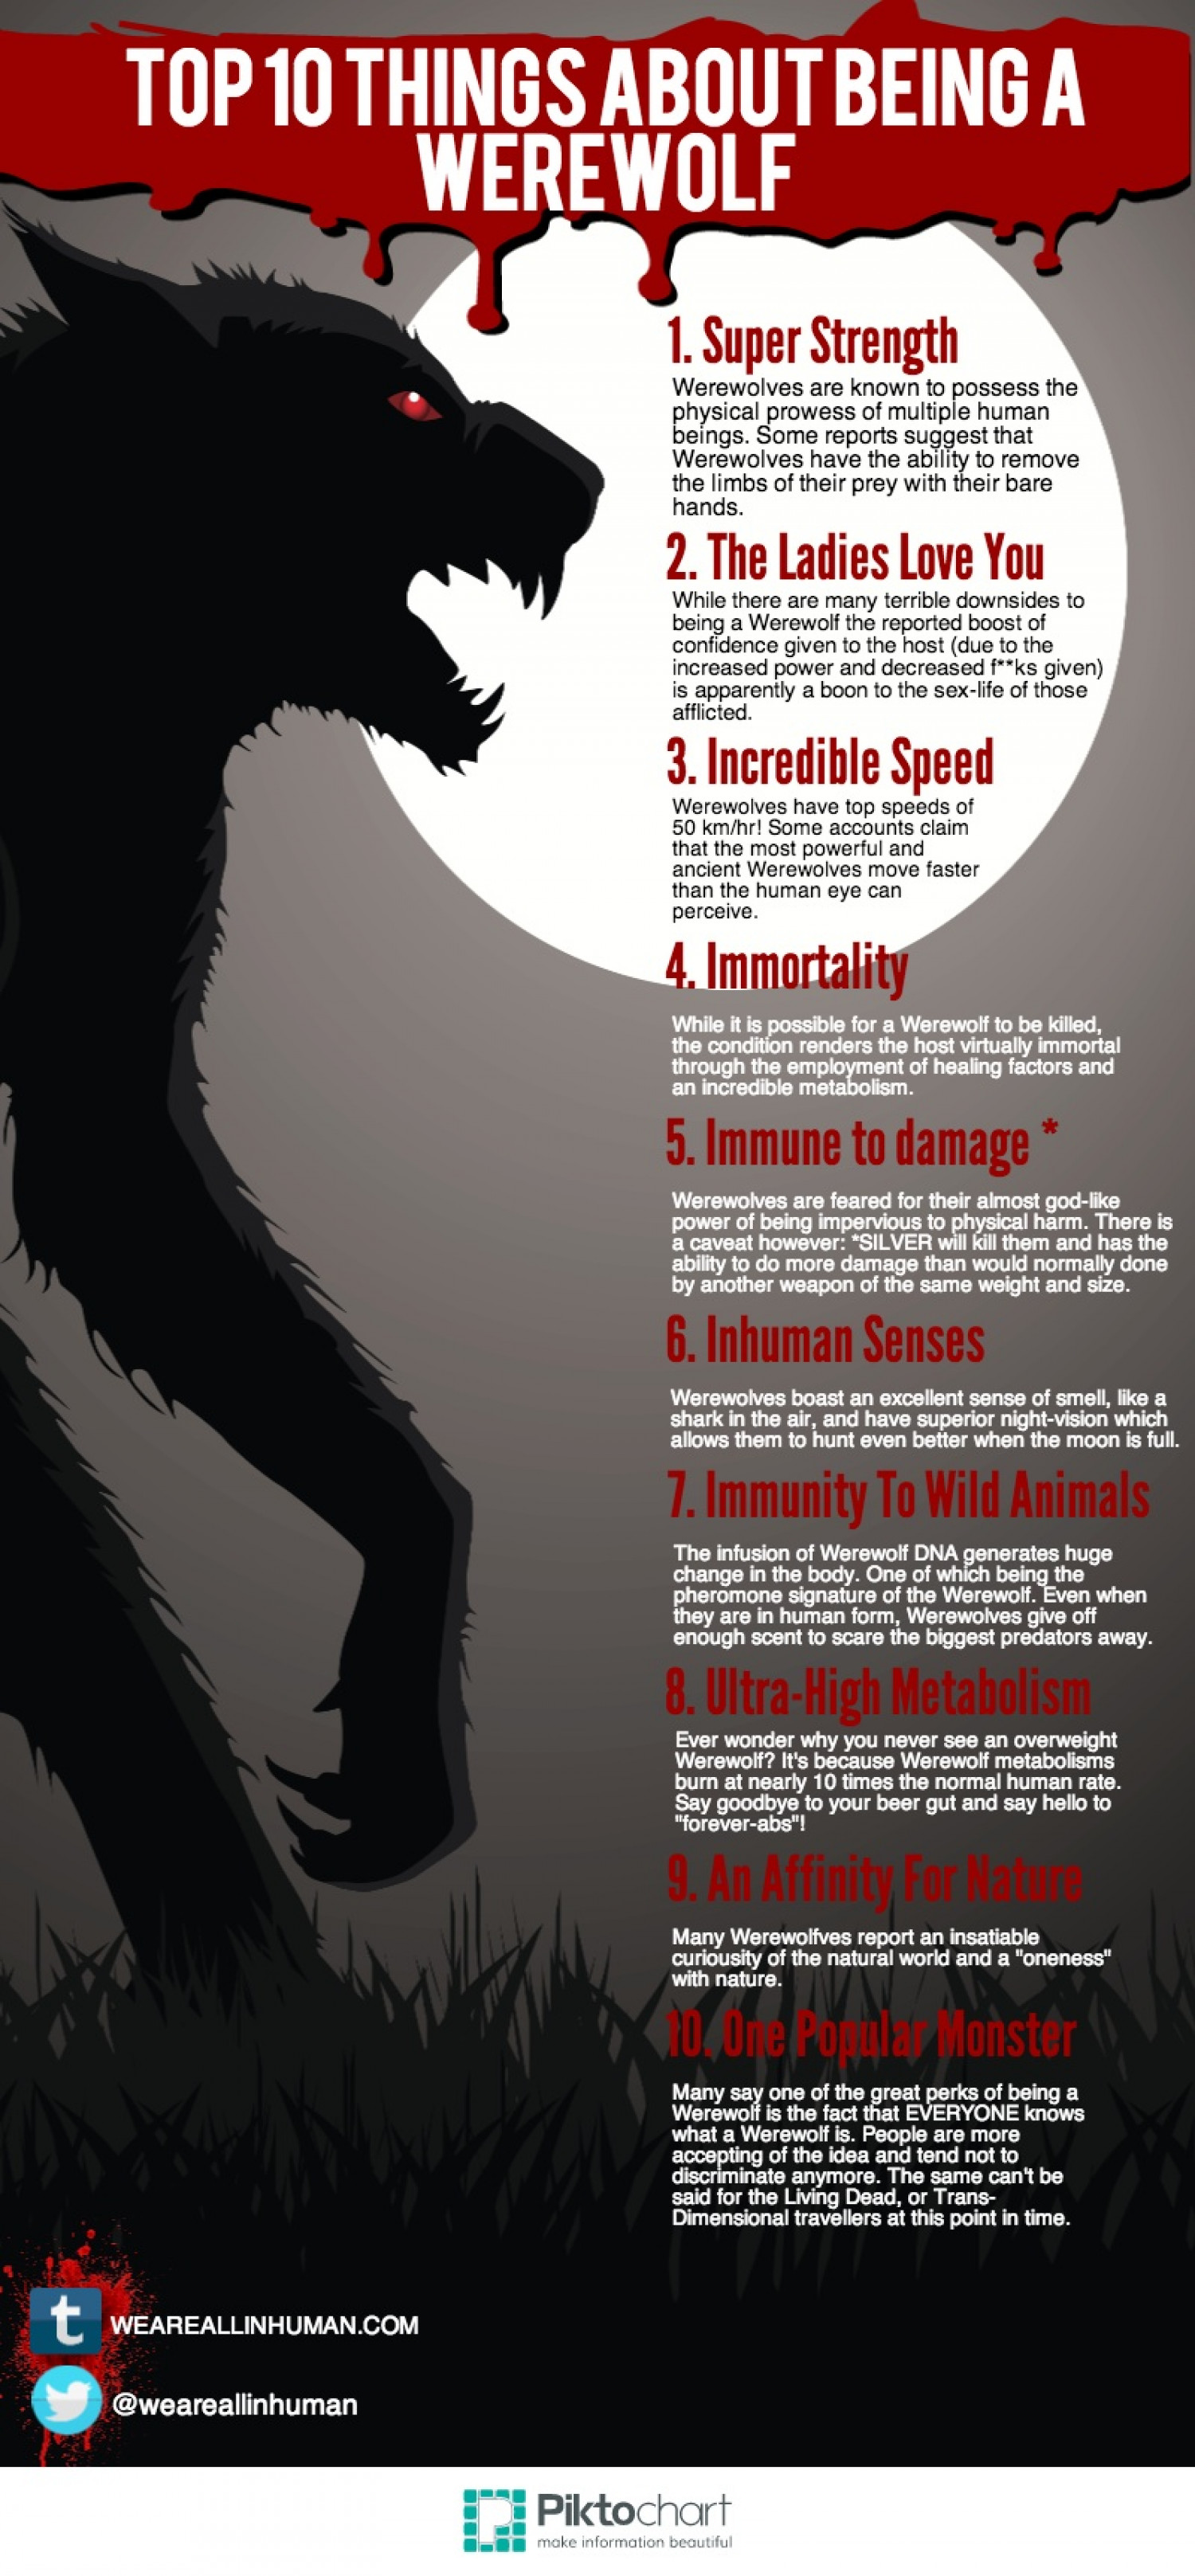 Top 10 Things About Being a Werewolf Infographic